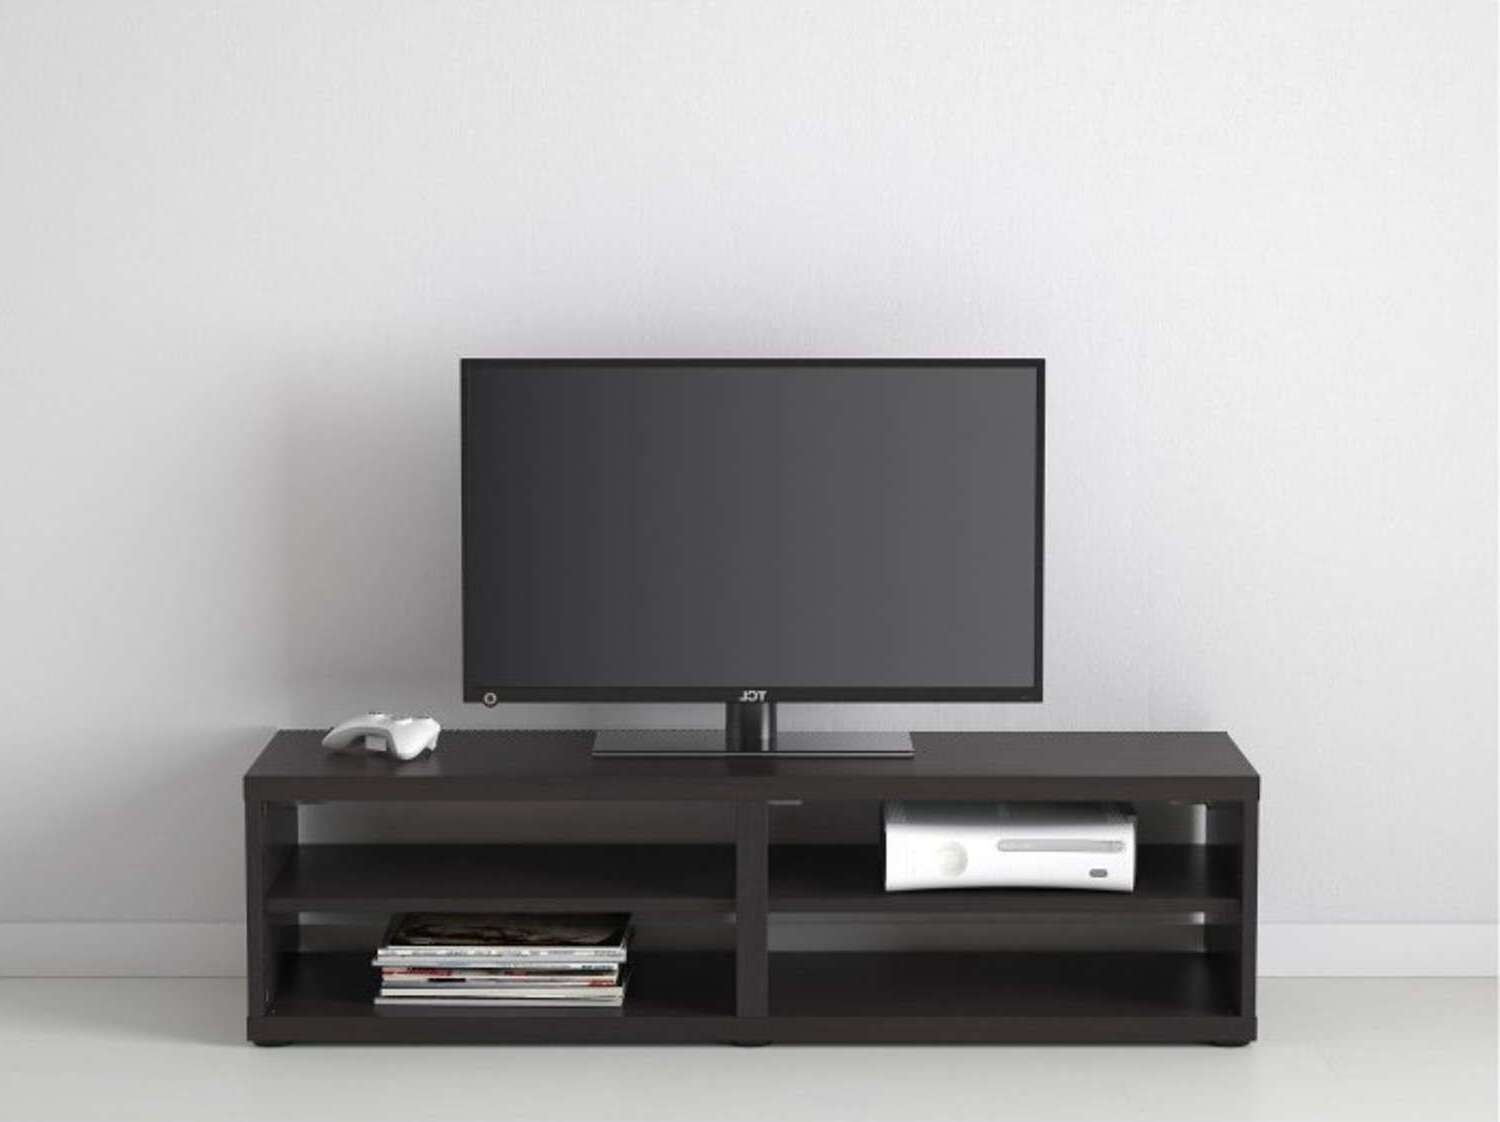 Modern Tv Stands & Units | Furniturebox With Black Modern Tv Stands (View 12 of 15)